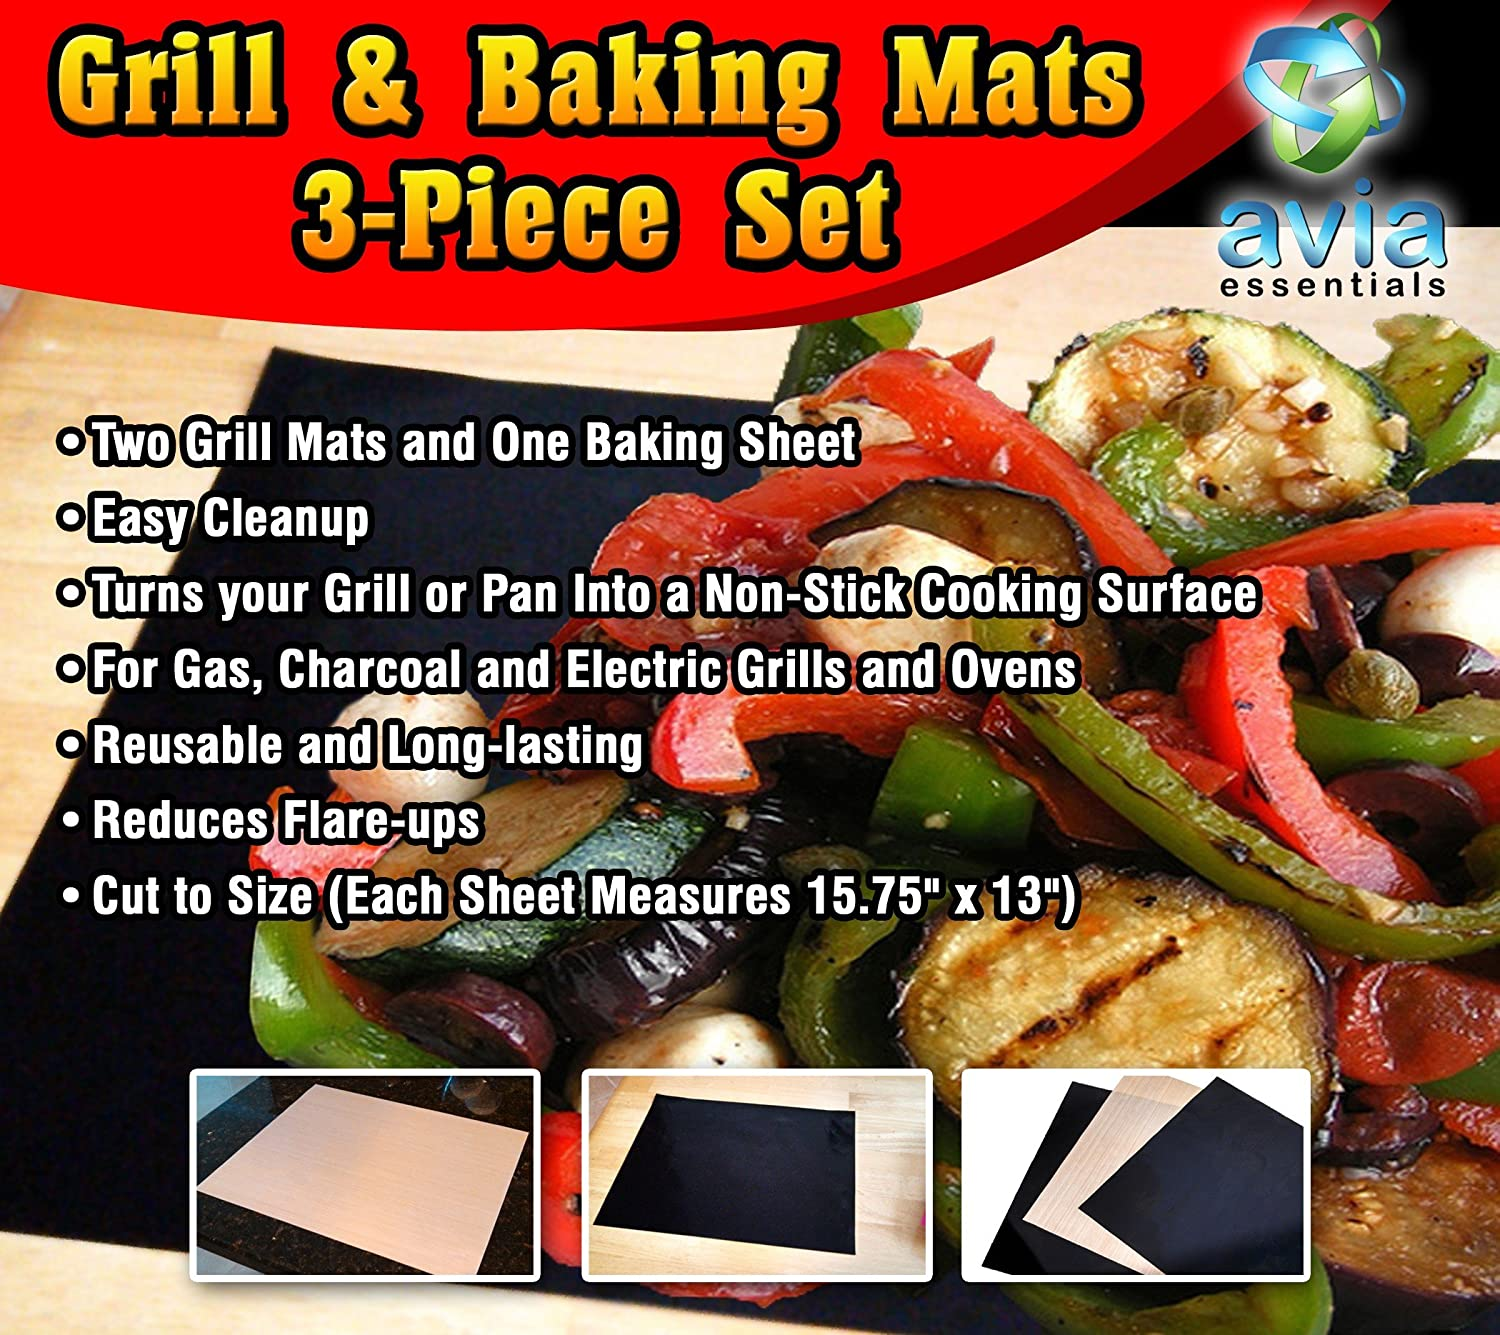 Grill Mat and Baking Sheet 3-Piece Set-Non-stick Economical Way to Grill